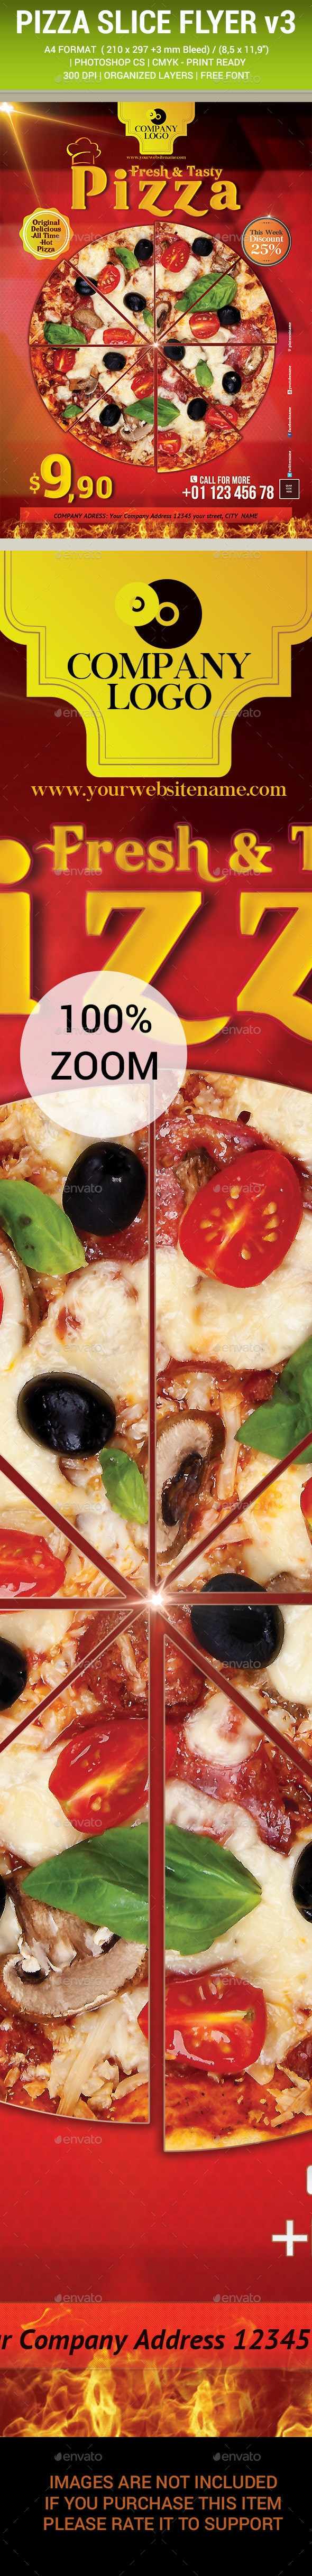 Pizza Slice Flyer v3 - Restaurant Flyers